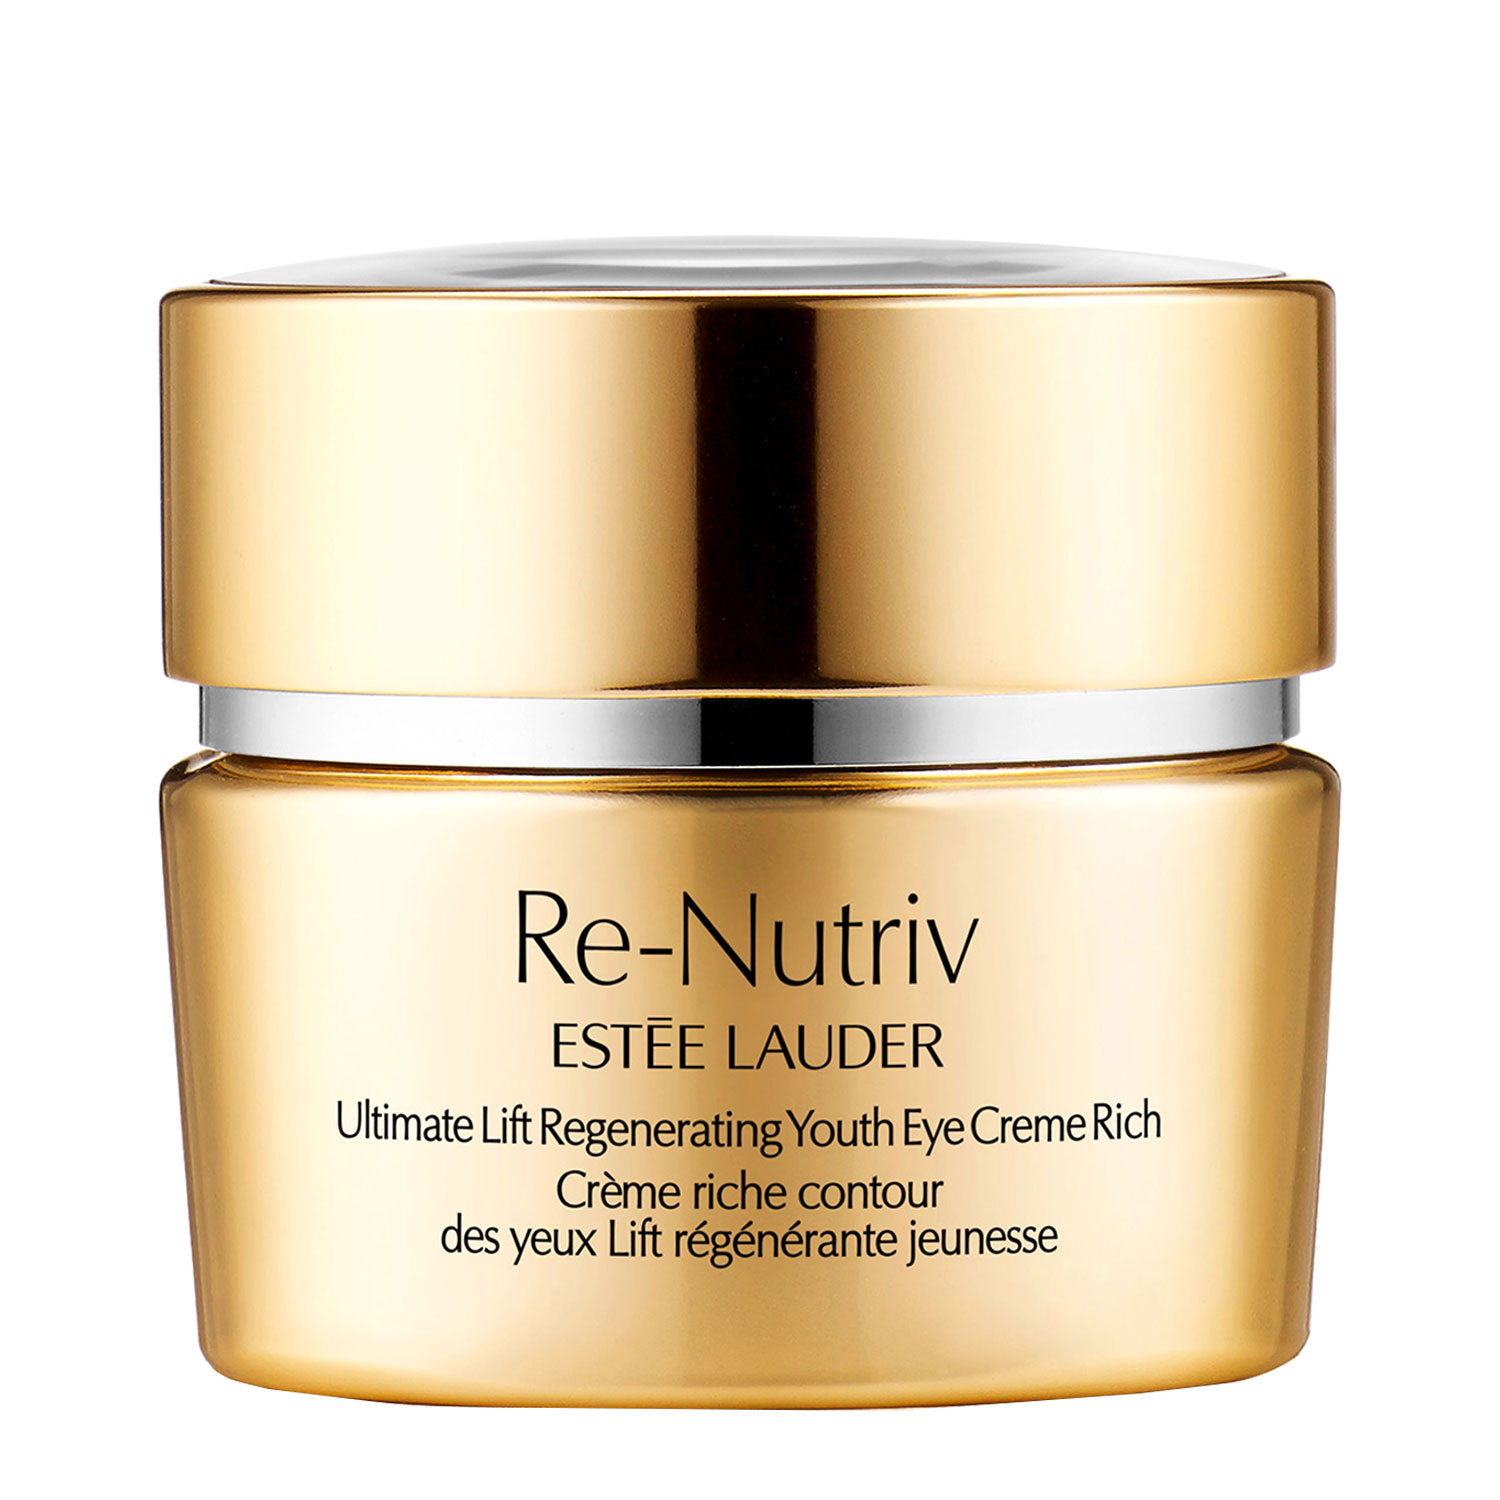 Re-Nutriv - Ultimate Lift Regenerating Youth Eye Contour Rich Cream